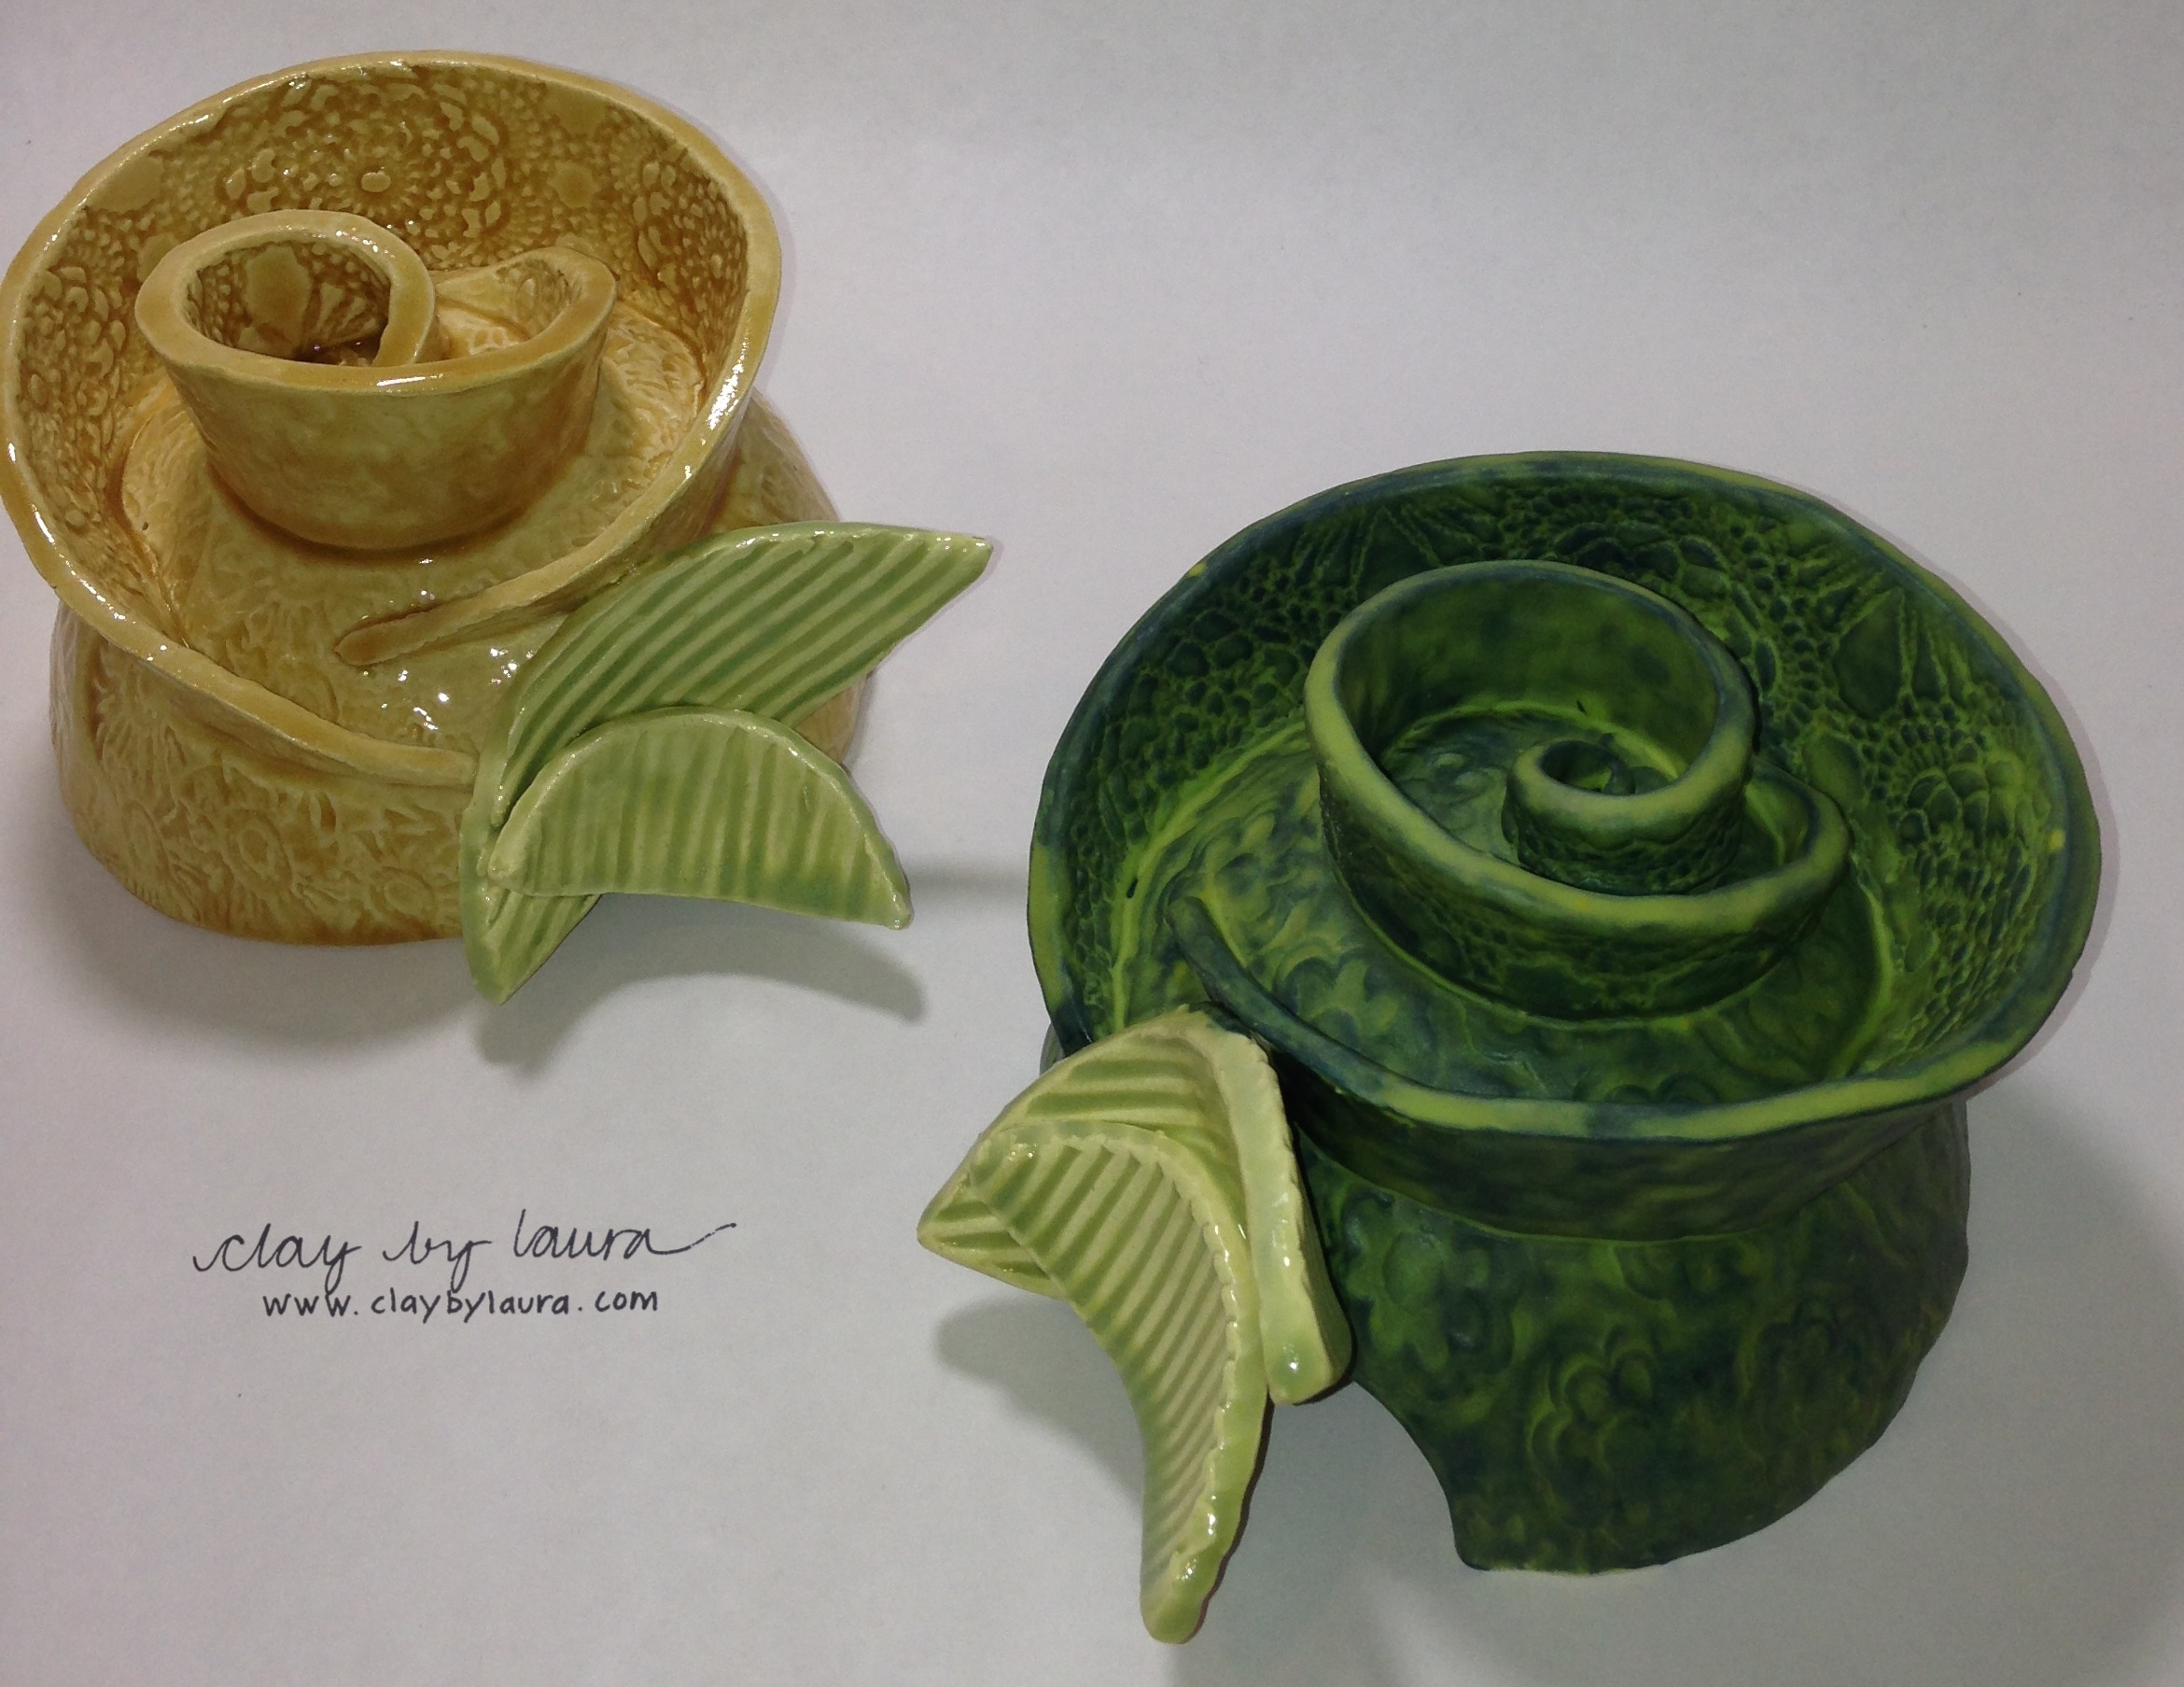 I completed a glaze firing this week. Here are some custom 'Toad Abodes' that are on their way to Bluffton, SC.